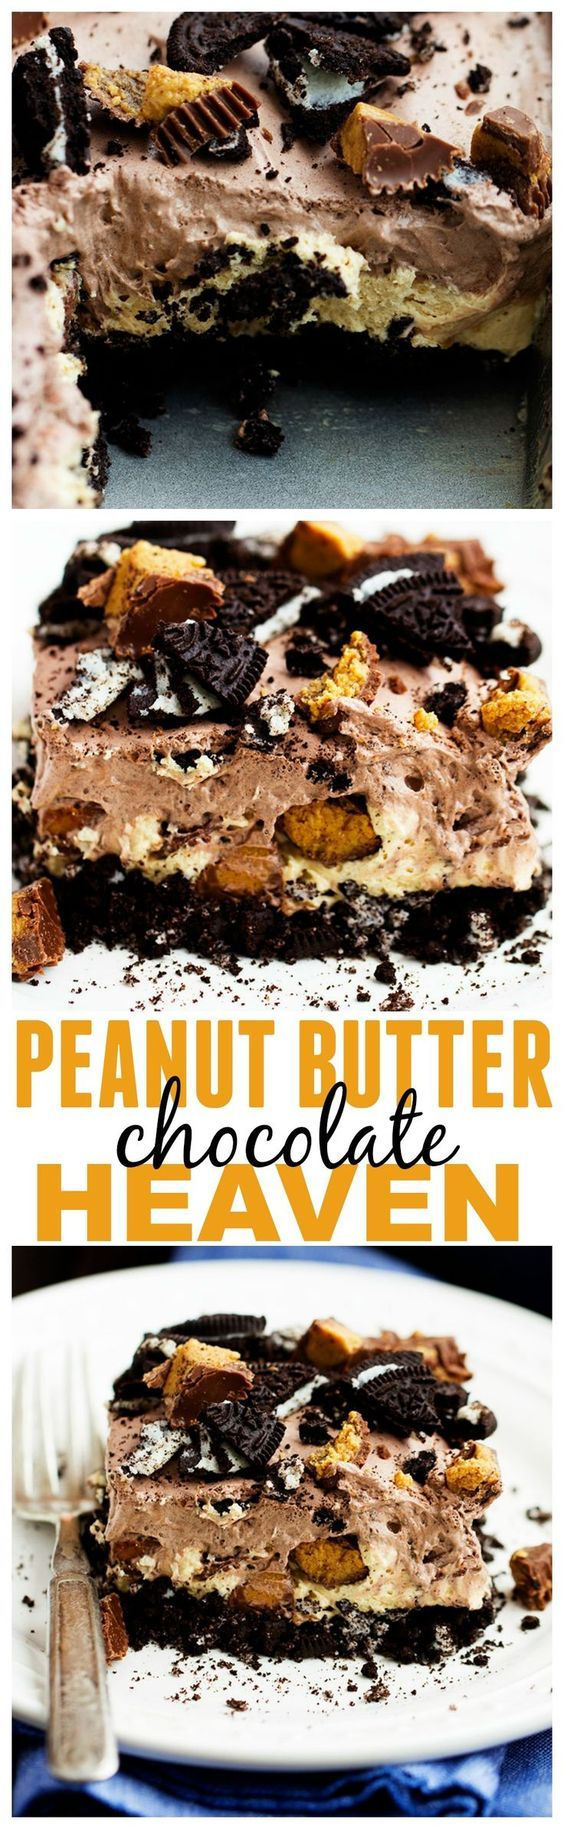 This Peanut Butter Chocolate Heaven is one of the BEST desserts you will make! Layers of oreo, peanut butter cheesecake, and a chocolate pudding whipped topping! HEAVEN!